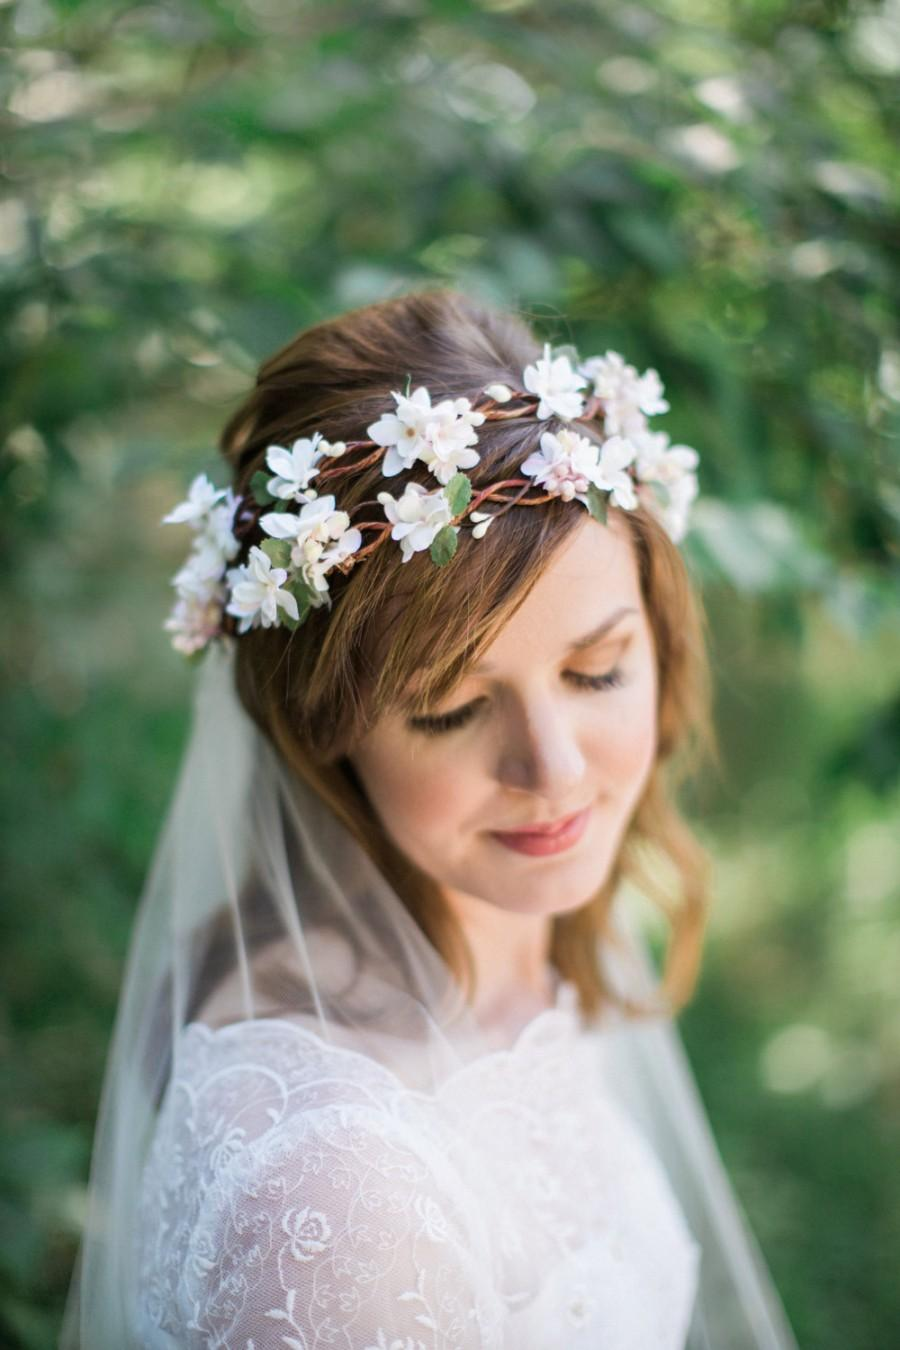 Wedding ideas flower crown 3 weddbook bridal headpiece bridal flower crown flower crown headband ivory flower crown pink flower crown floral crown wedding woodland 88 dhlflorist Images